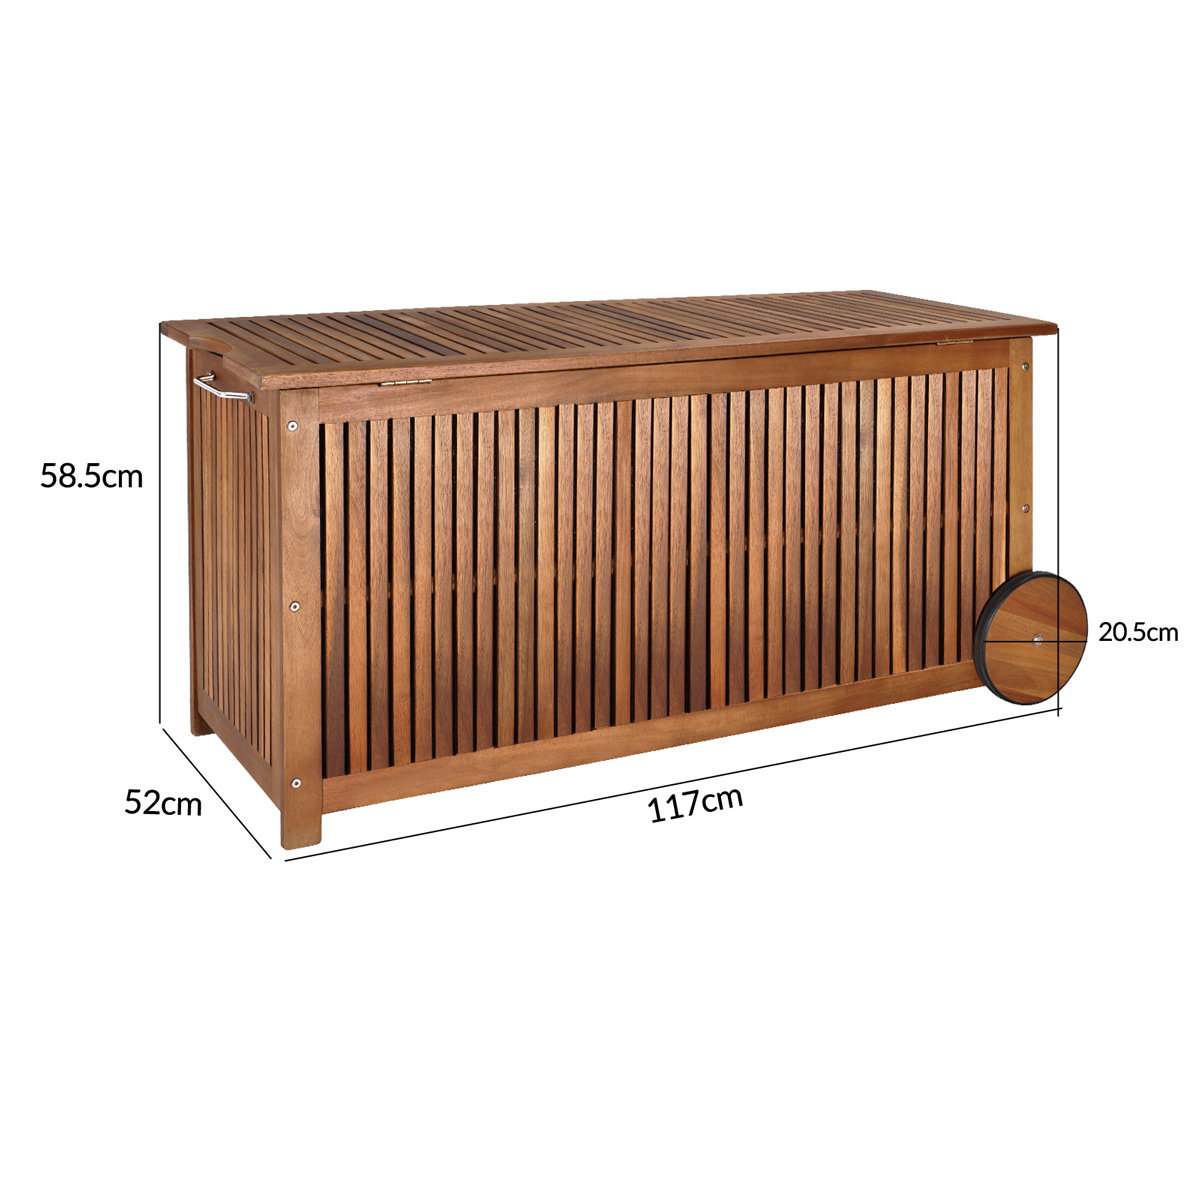 auflagenbox holztruhe gartenbox gartentruhe kissenbox truhe holz 117cm holzbox ebay. Black Bedroom Furniture Sets. Home Design Ideas